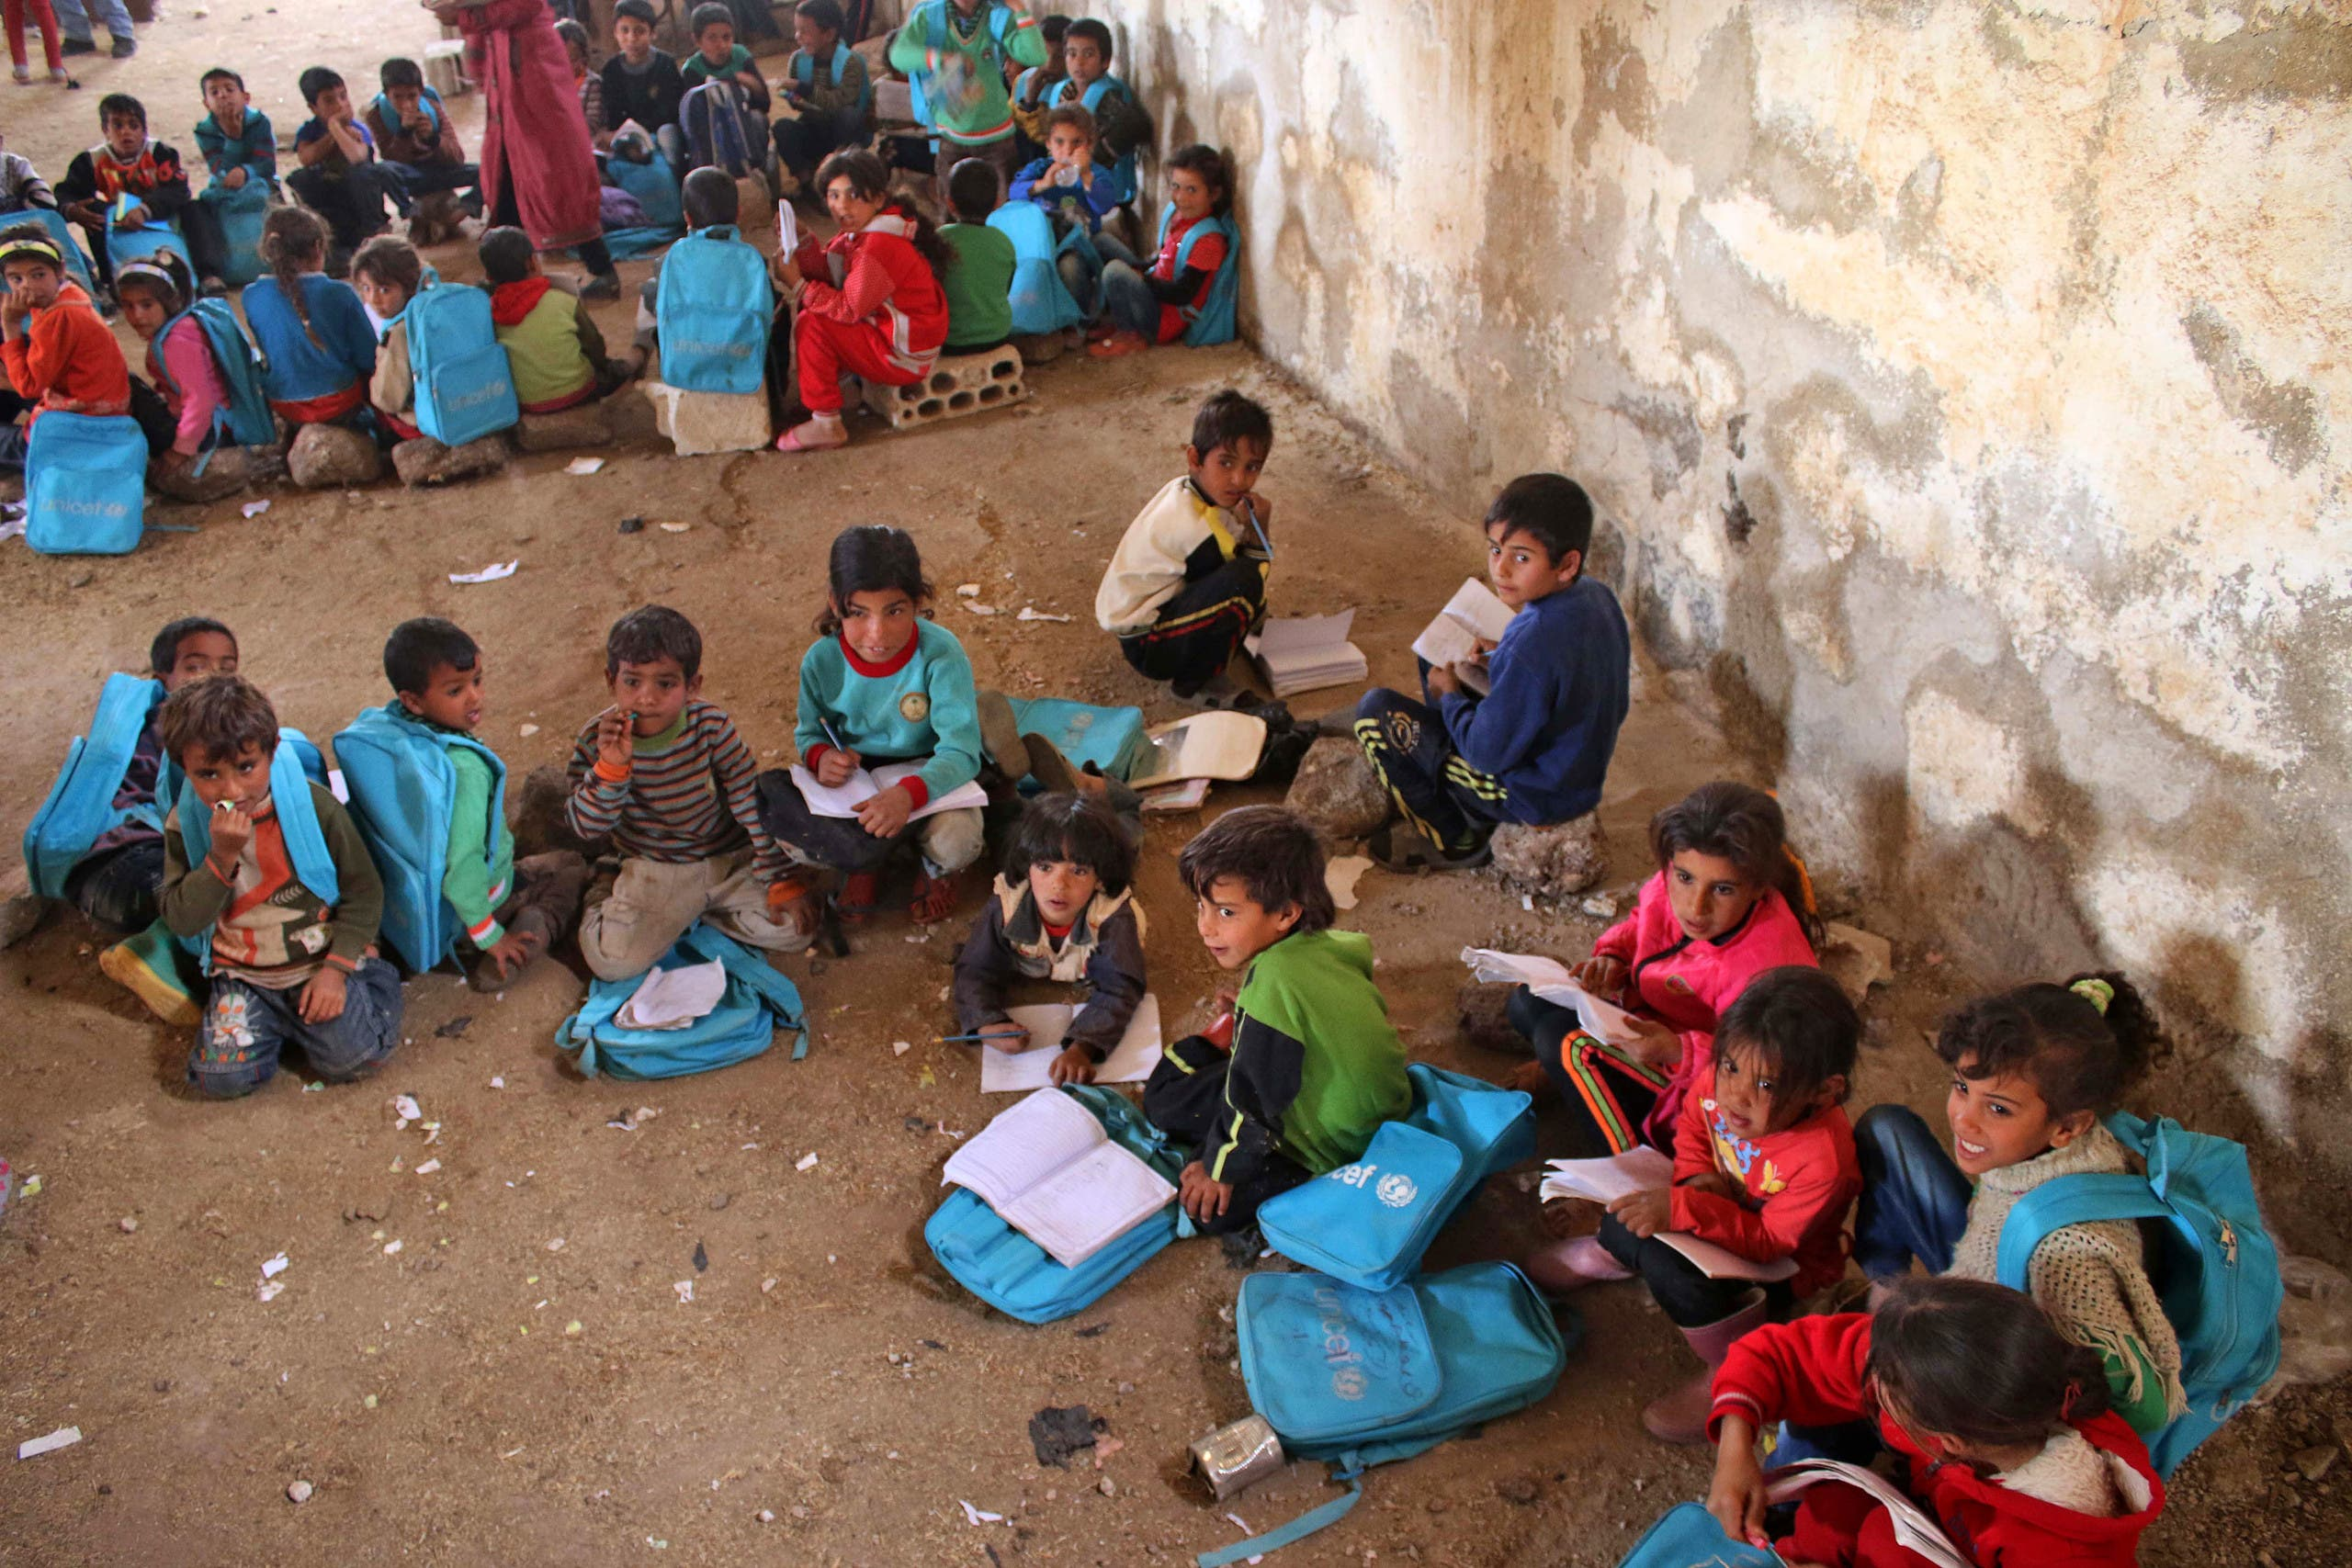 Syrian children sit during class a barn that has been converted into a makeshift school to teach internally displaced children from areas under government control, in a rebel-held area of Daraa, in southern Syria on November 10, 2016